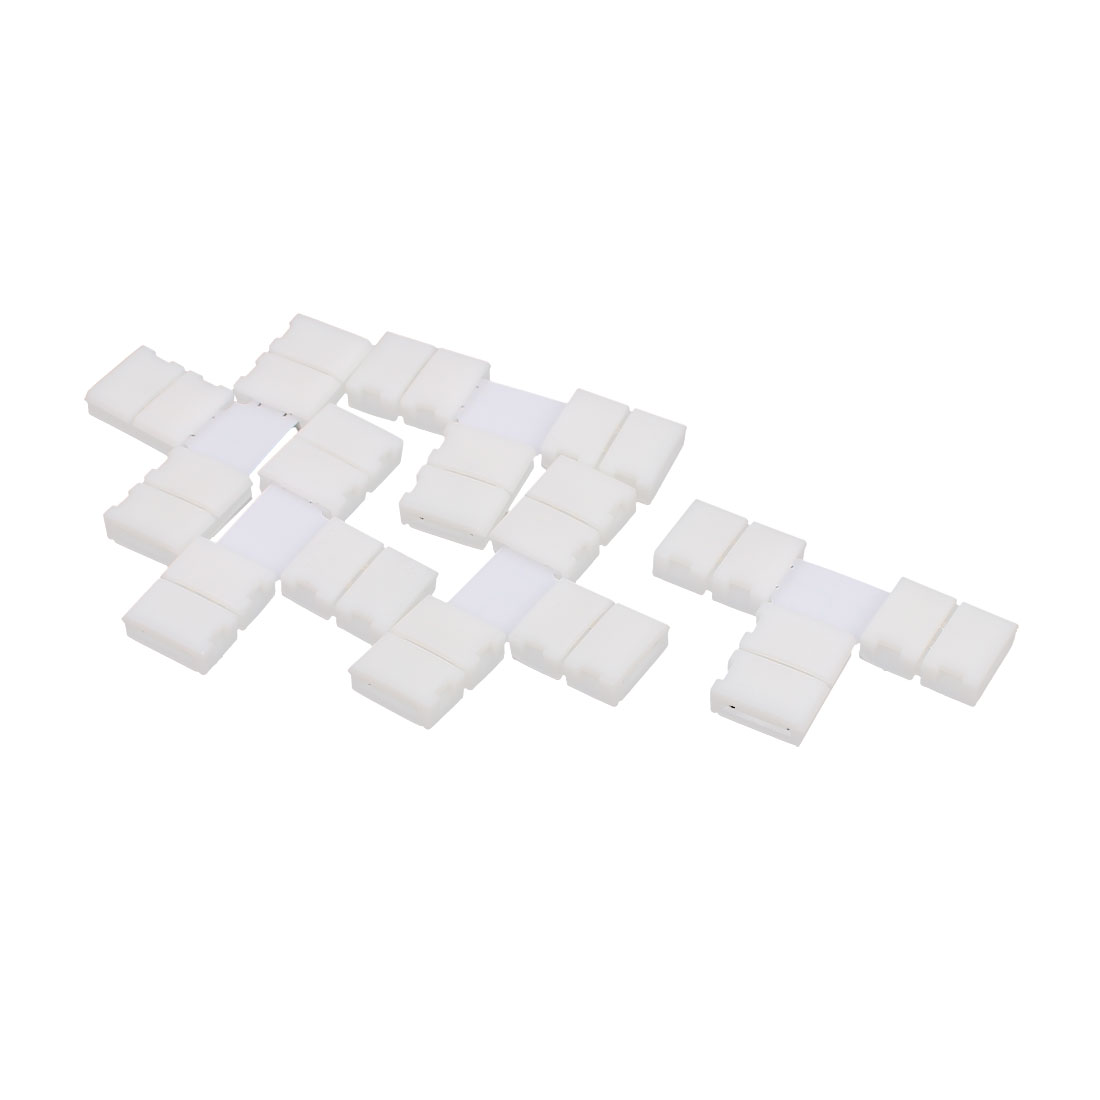 8mm Wide 4 Pin RGB Light Strip T Shape Connectors Off White 5pcs for 3258 LED